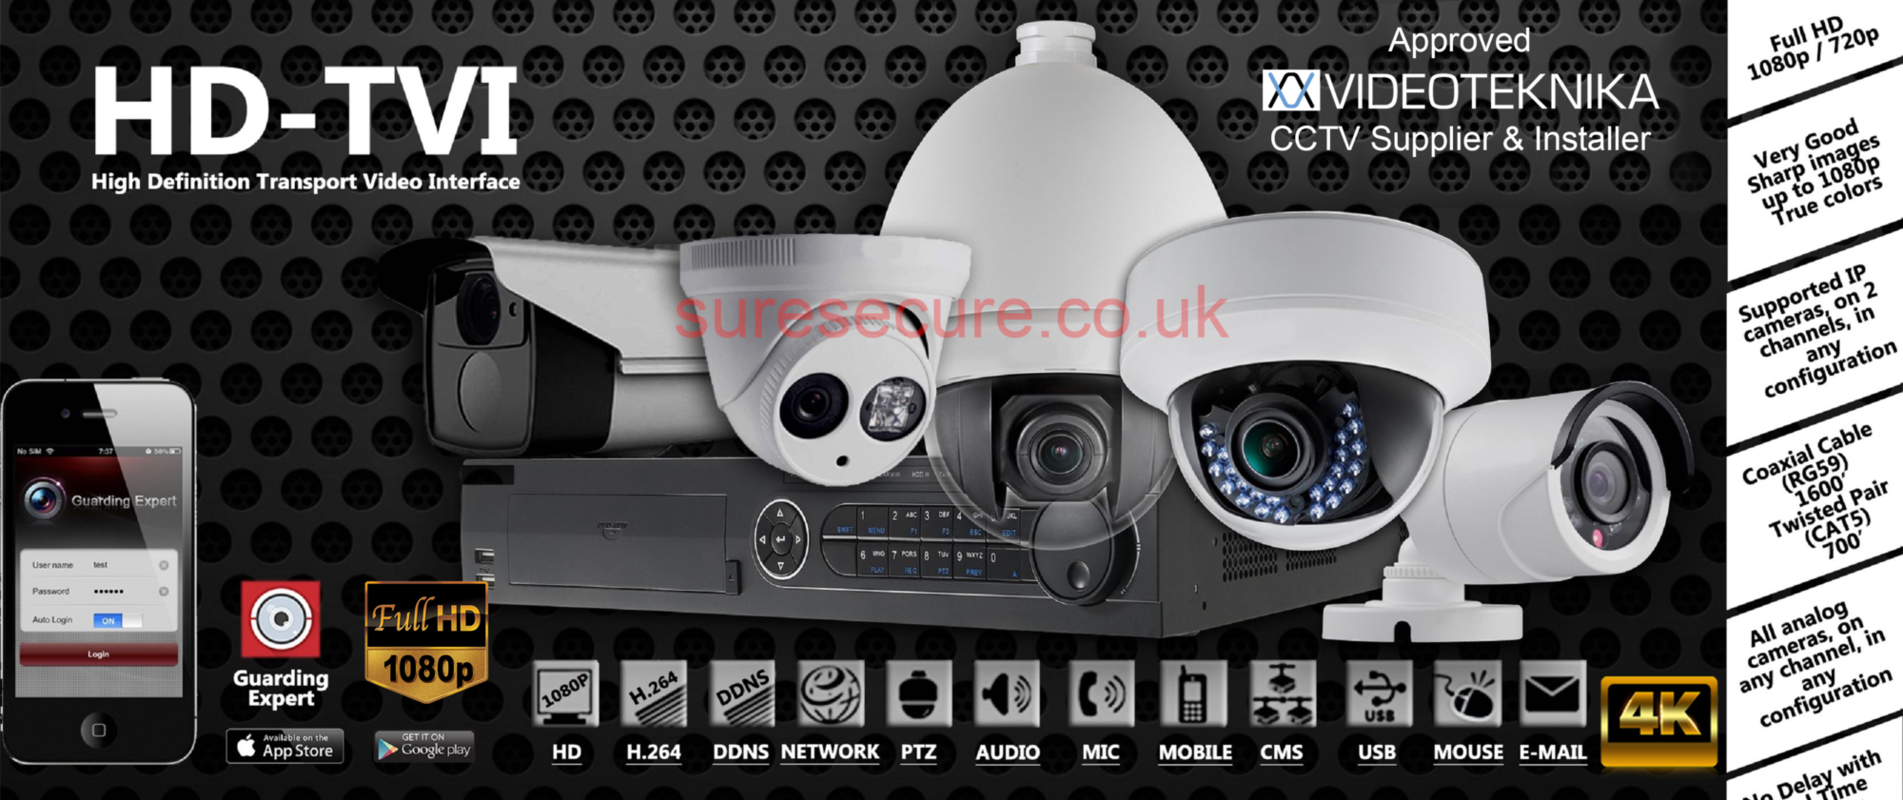 CCTV Installations Middlesex, CCTV Installations London, CCTV Installations Twickenham